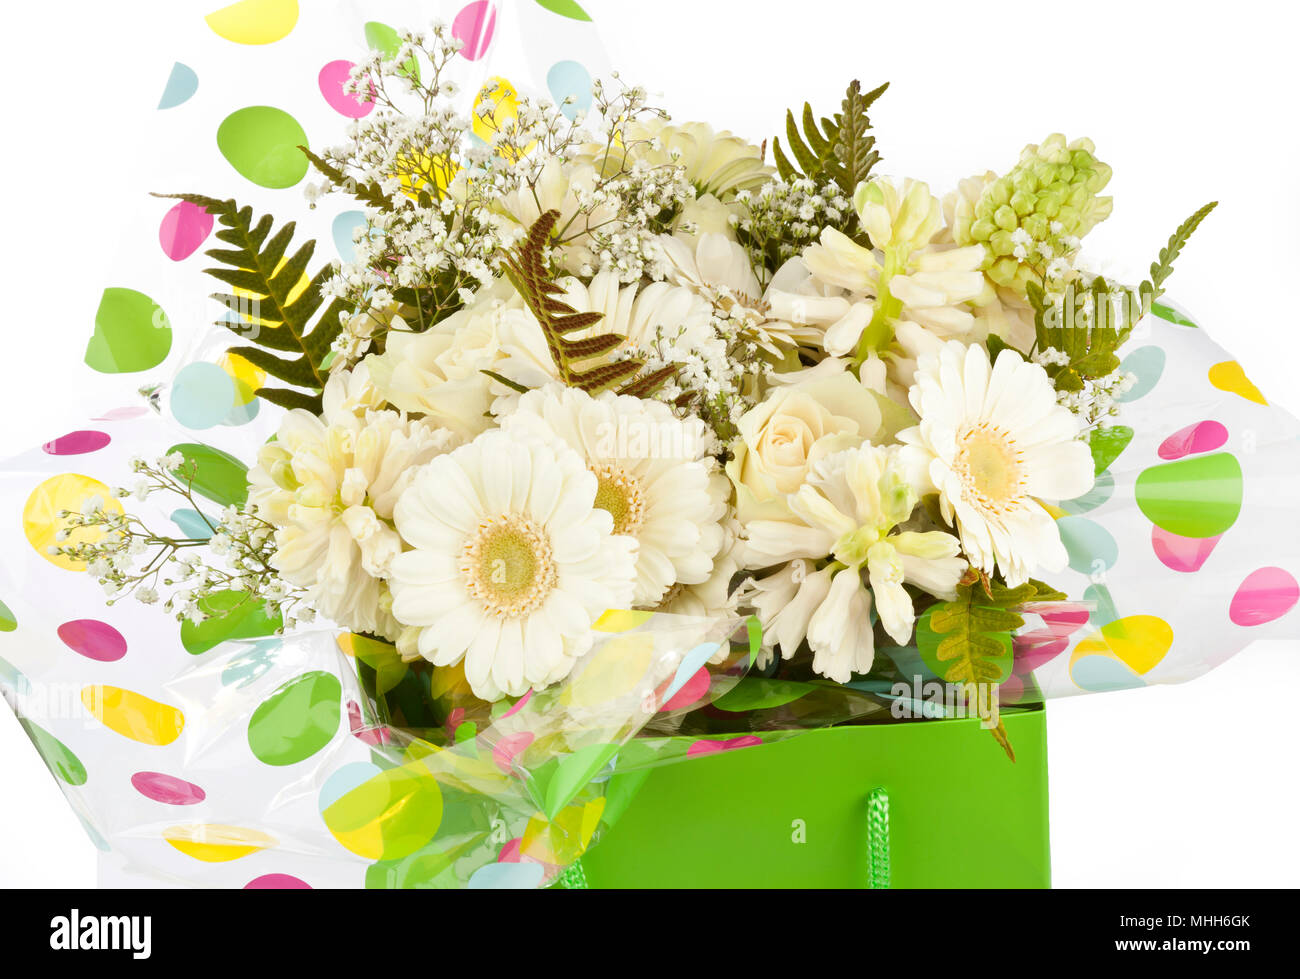 Coloured cellophane stock photos coloured cellophane stock images a lime green bag filled with cream coloured flowers stock image mightylinksfo